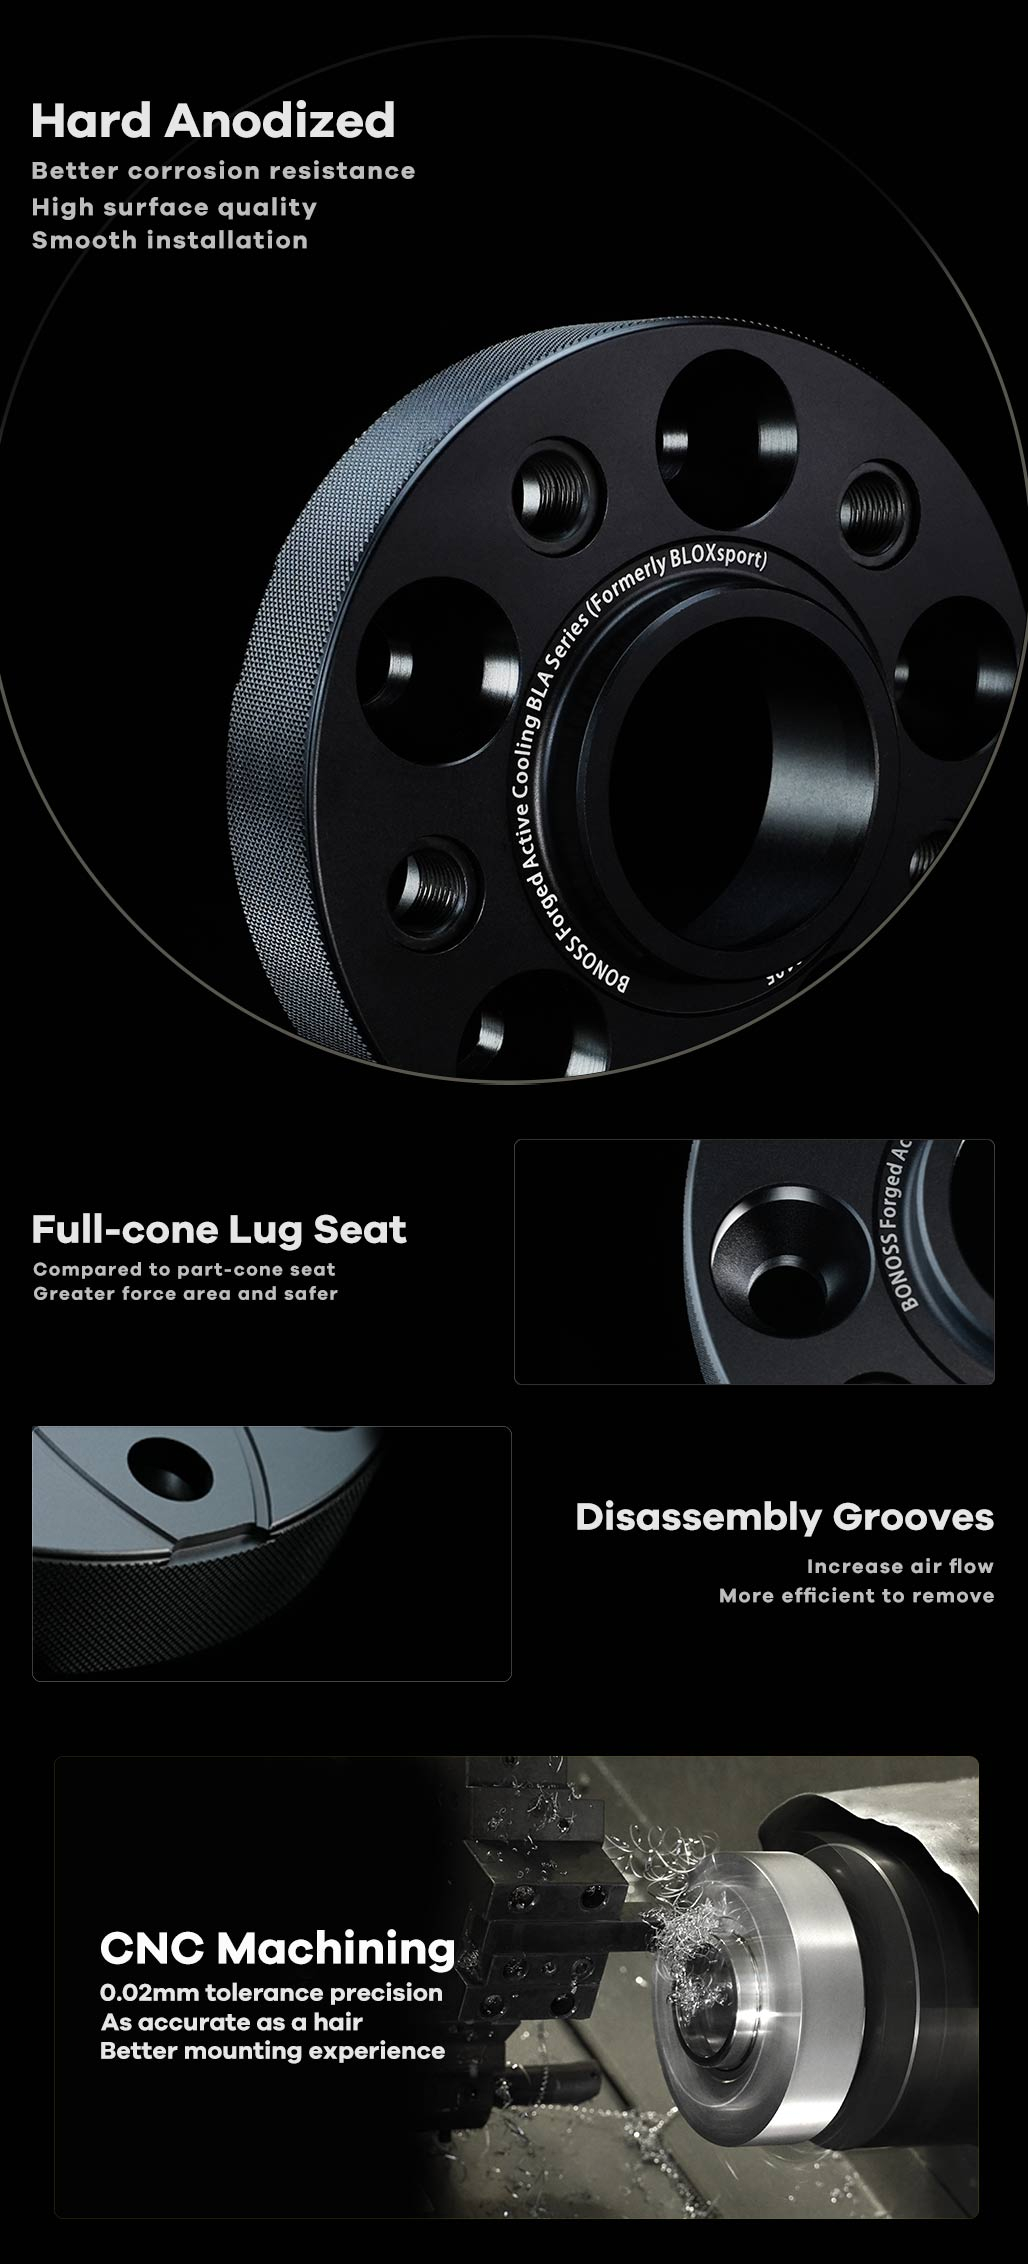 BONOSS Forged Active Cooling AL7075-T6 Hubcentric Wheel Spacers PCD5x108 CB60.1 for Renault II (KW) facelift Kangoo 2013-2021 (3)